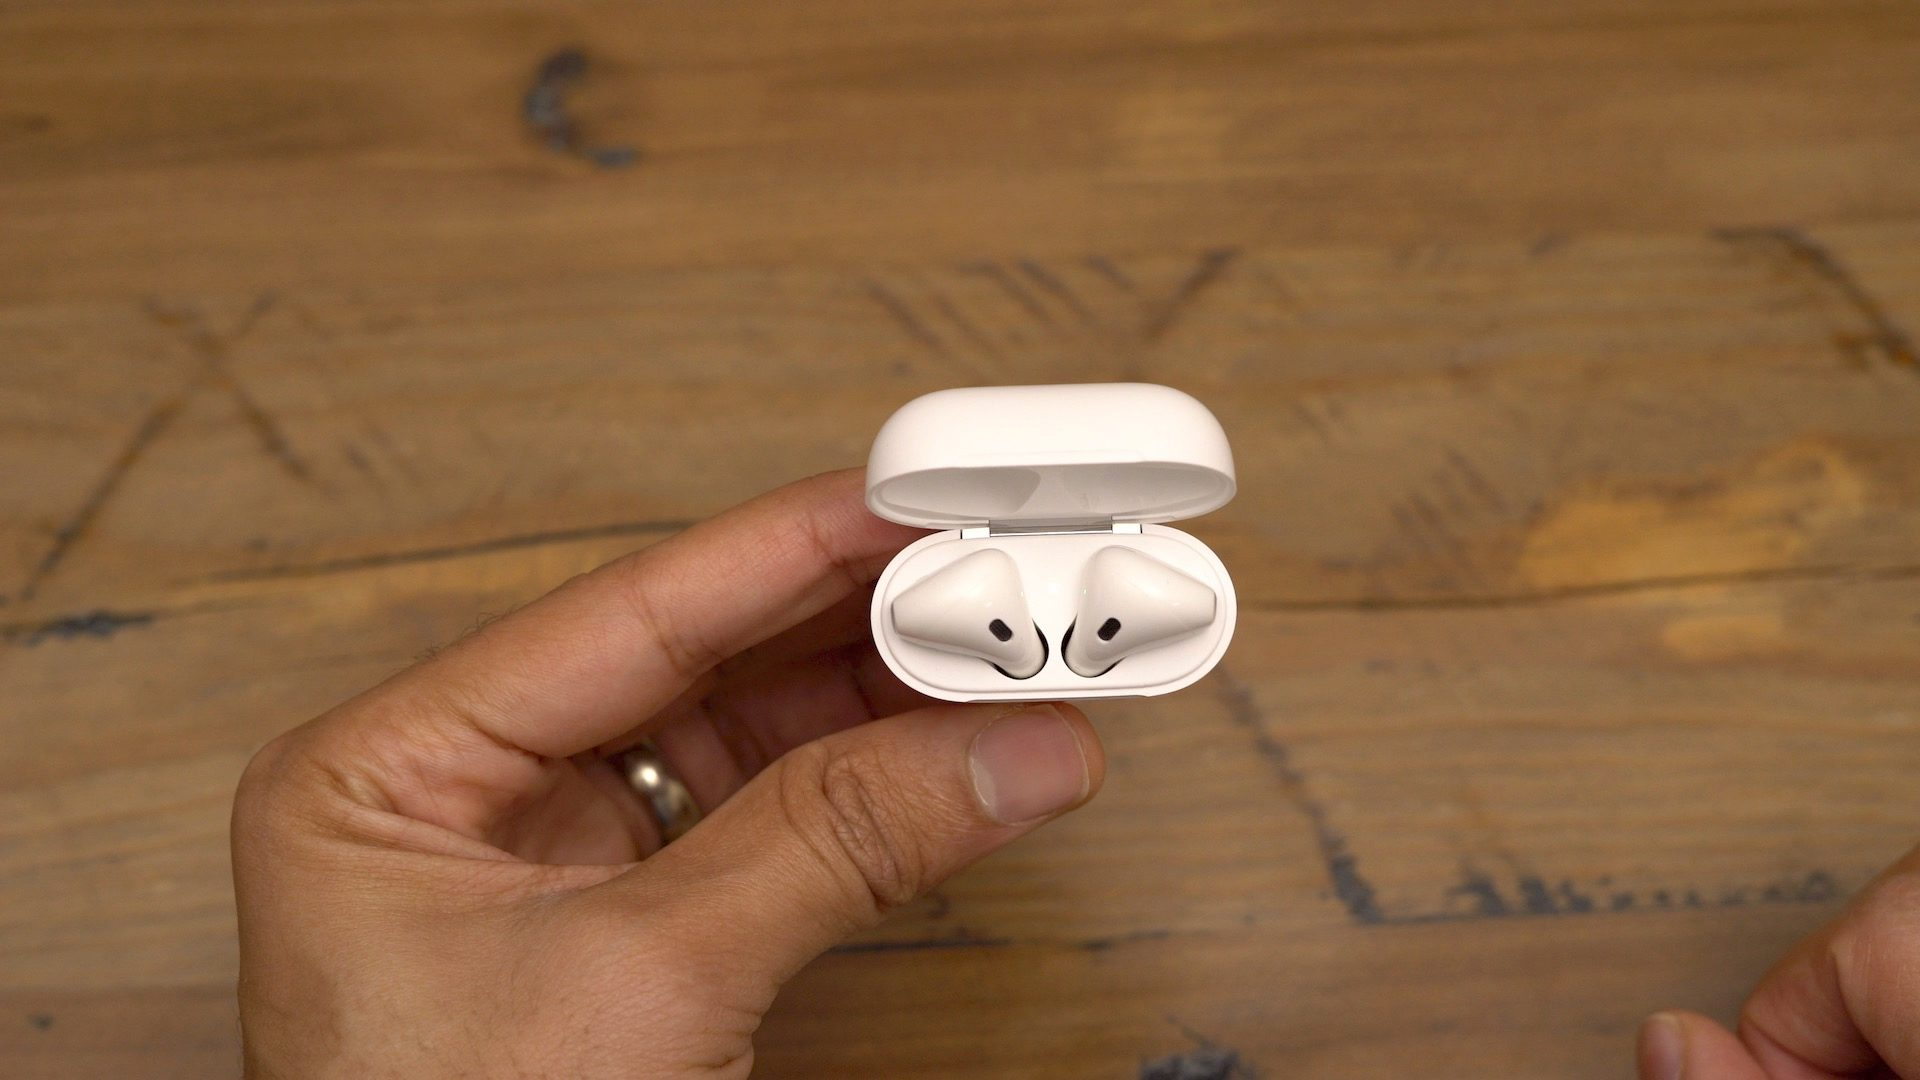 "<span href=""https://9to5mac.com/2018/06/30/how-to-reset-your-airpods/"">Cómo restablecer su AirPods</a>"